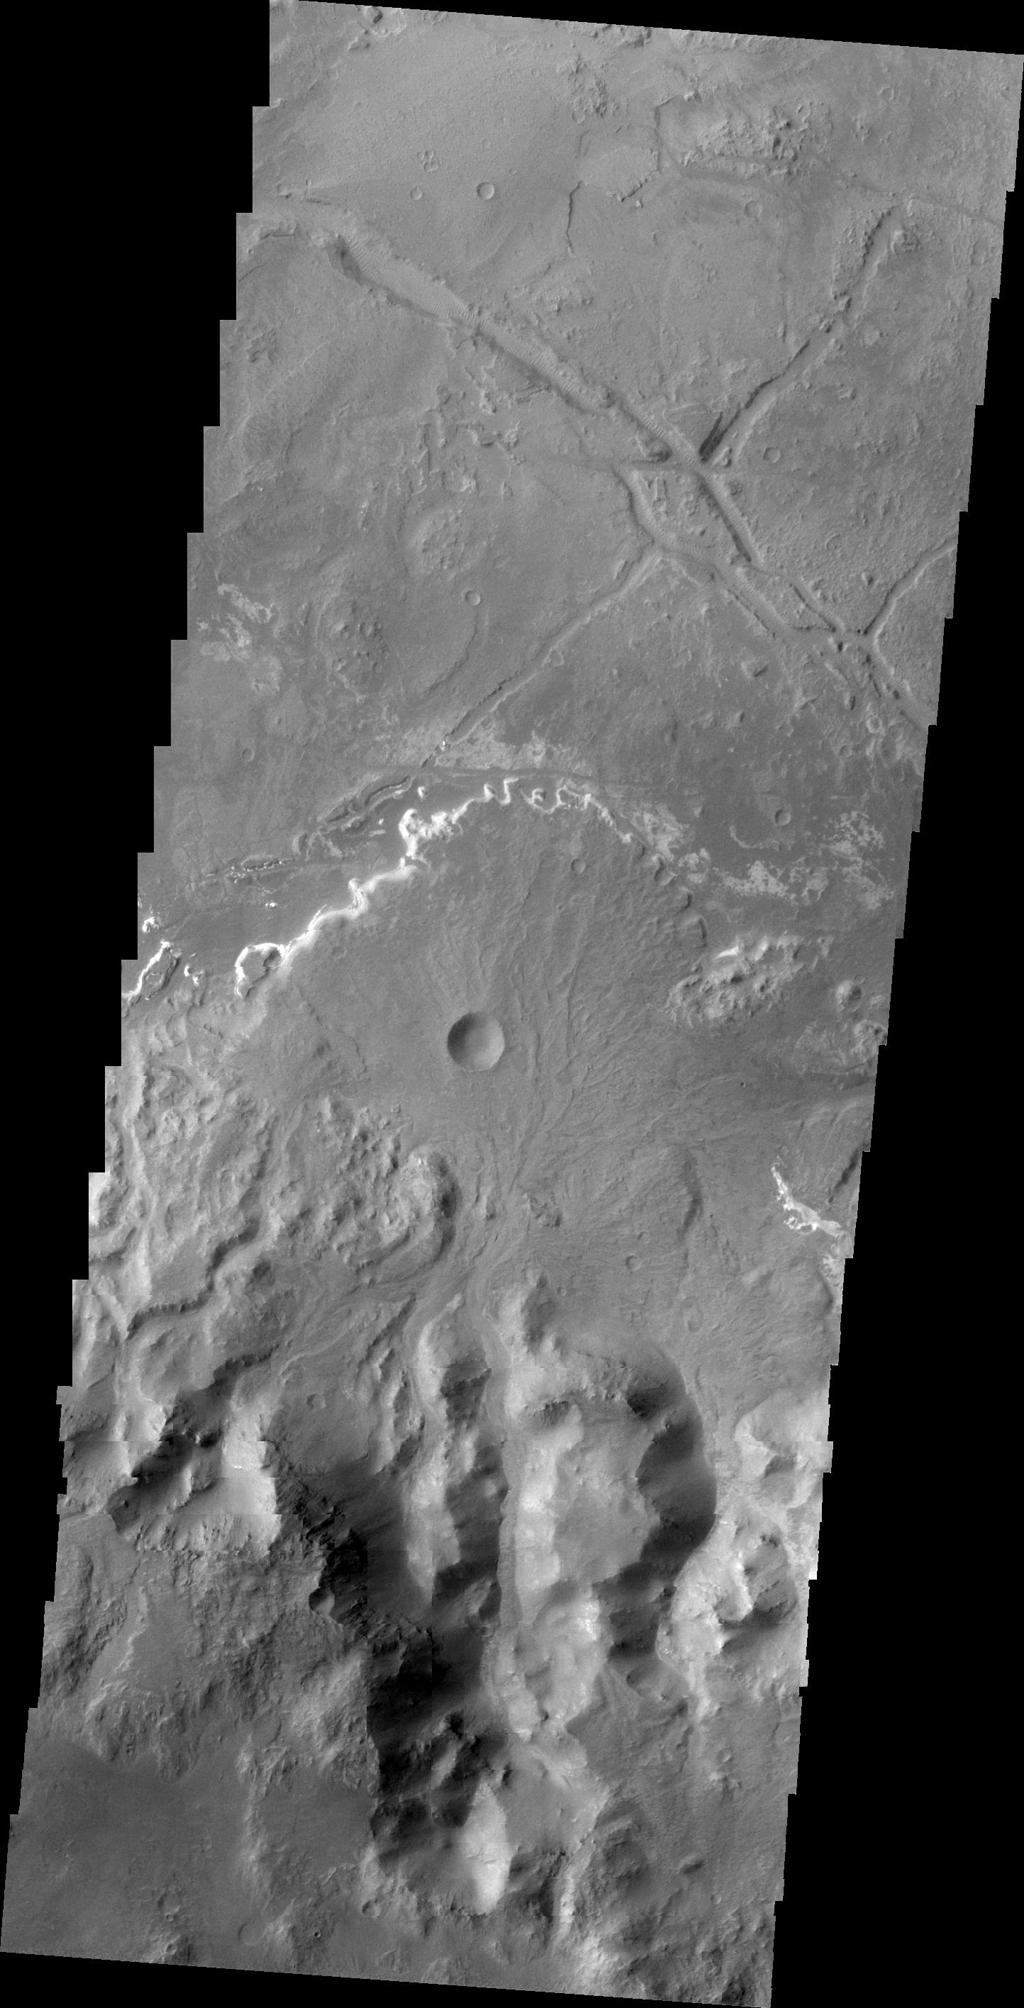 This image from NASA's 2001 Mars Odyssey shows a delta deposit on the floor of Holden Crater. This delta was formed by small channels dissecting the rim of the crater, rather than the influx of material from Uzboi Vallis.